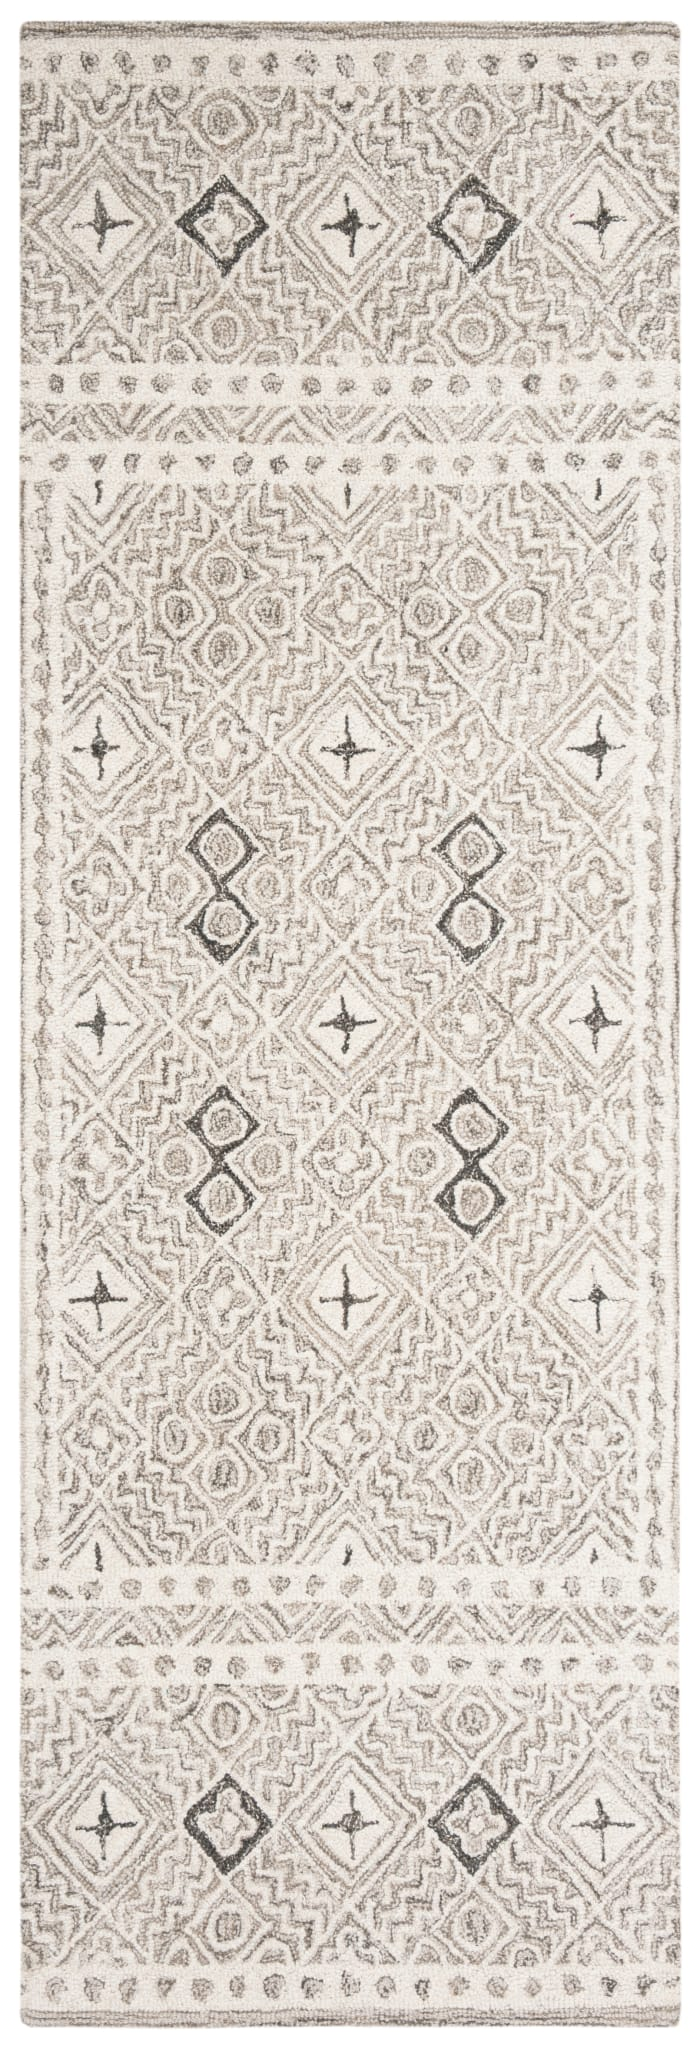 Essence Gray Wool Rug 2'5